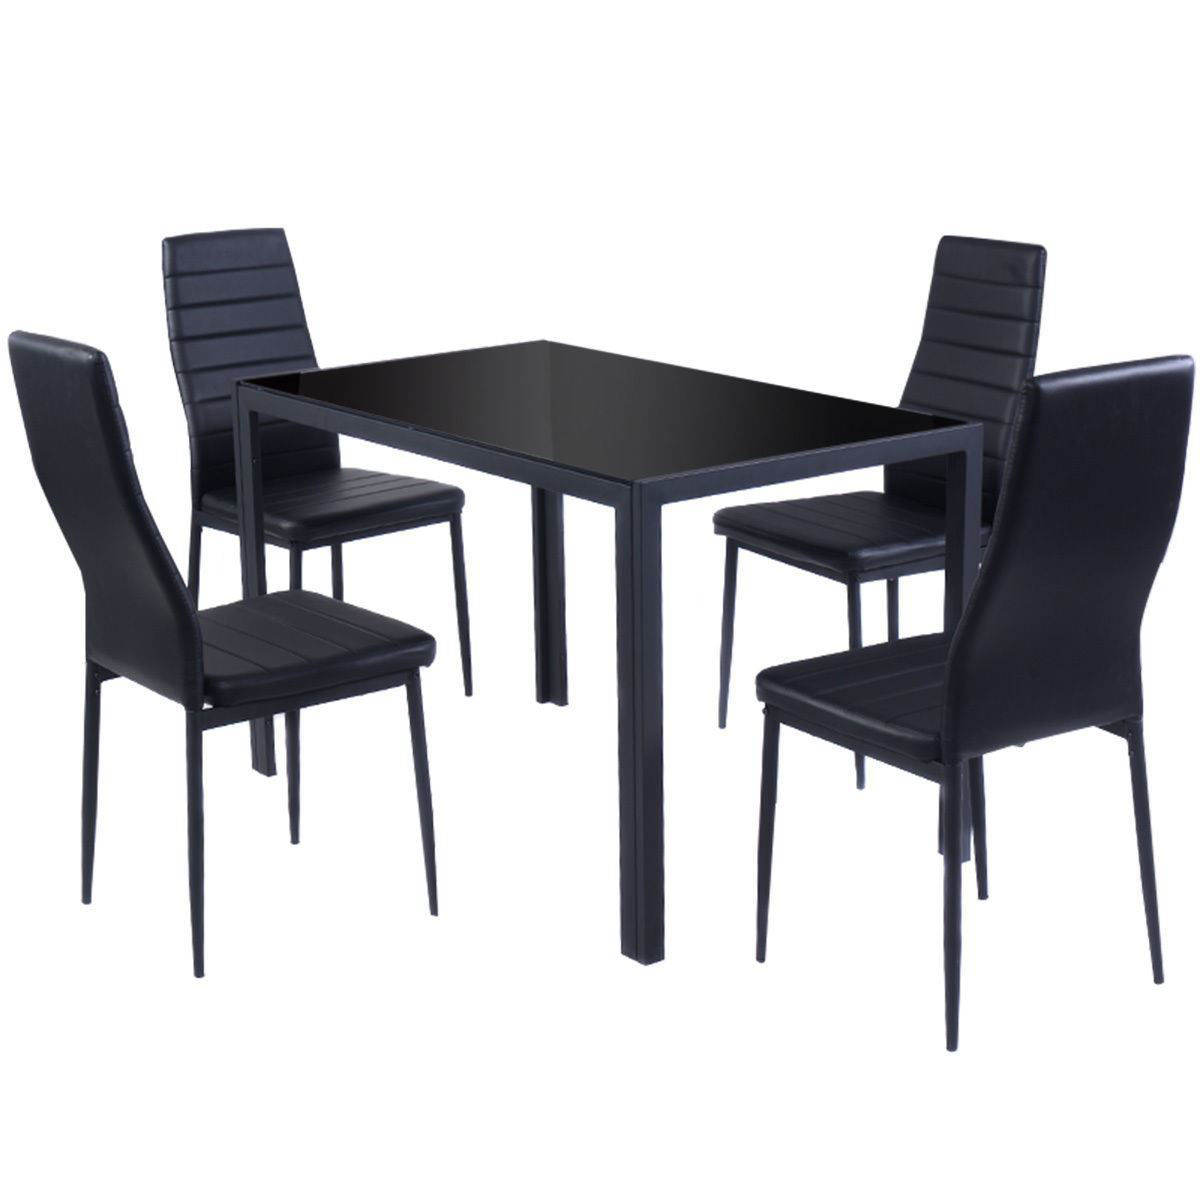 Picture of Kitchen Furniture Set - Black